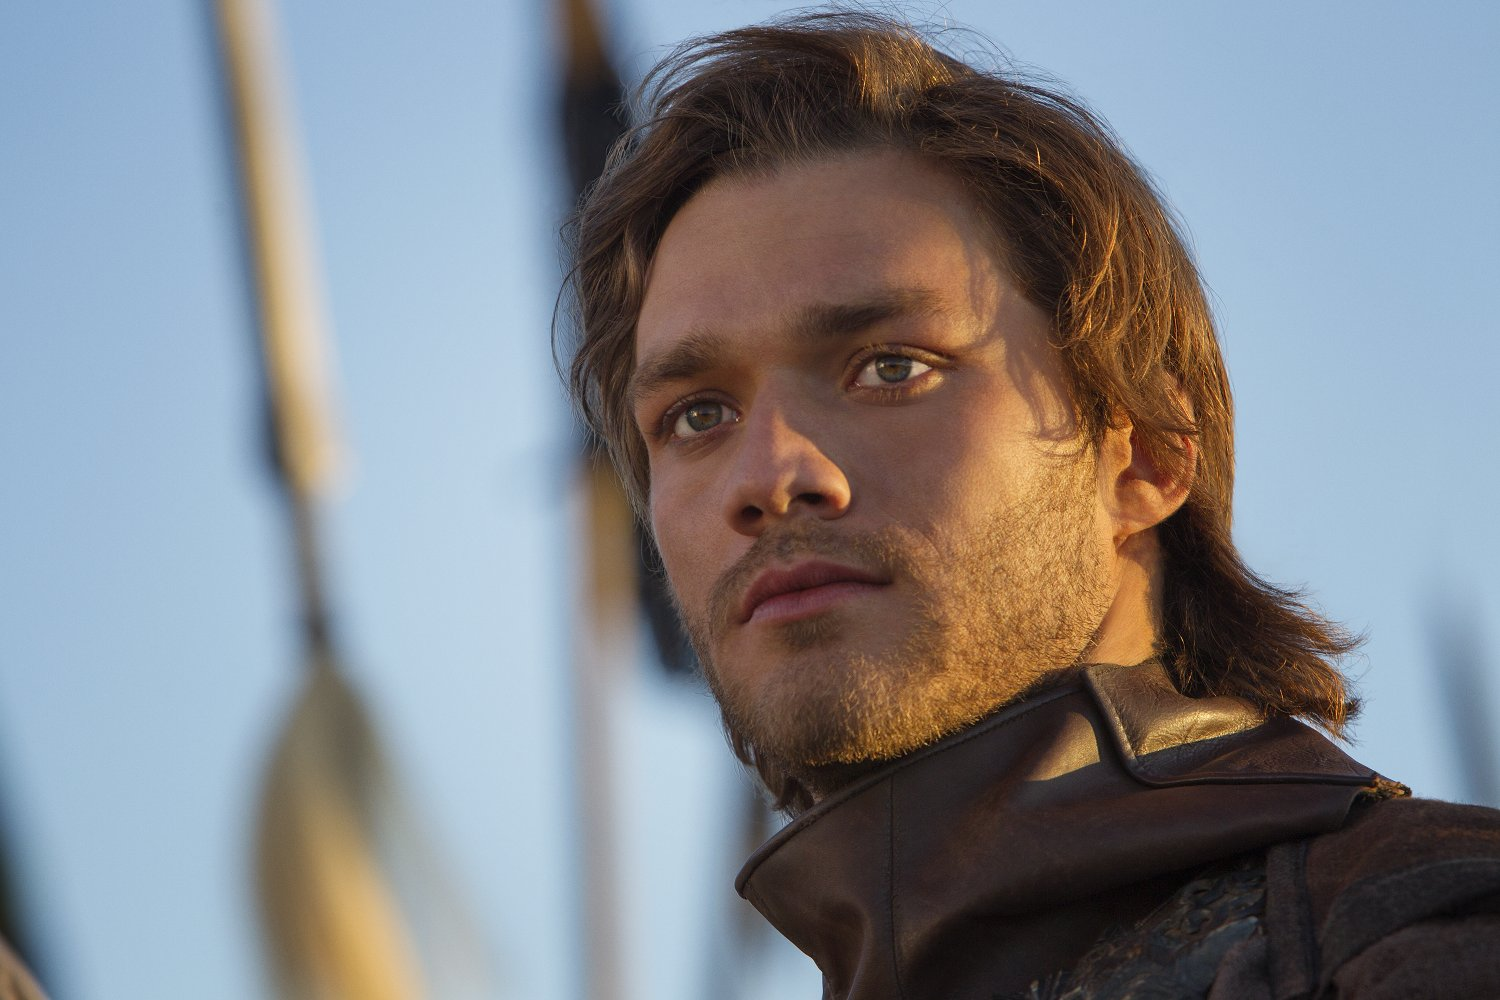 All about celebrity Lorenzo Richelmy! Watch list of Movies online